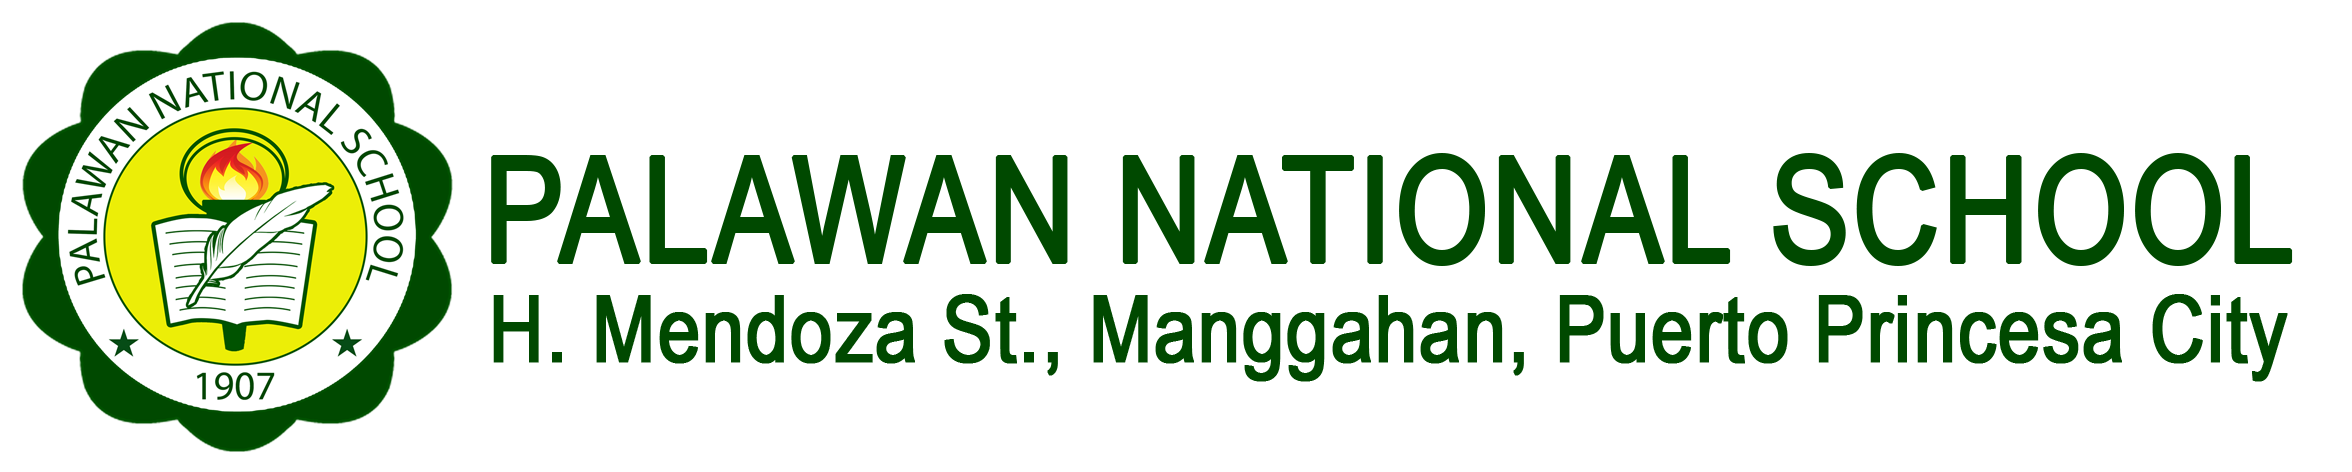 Official Website of Palawan National School | Puerto Princesa City Philippines